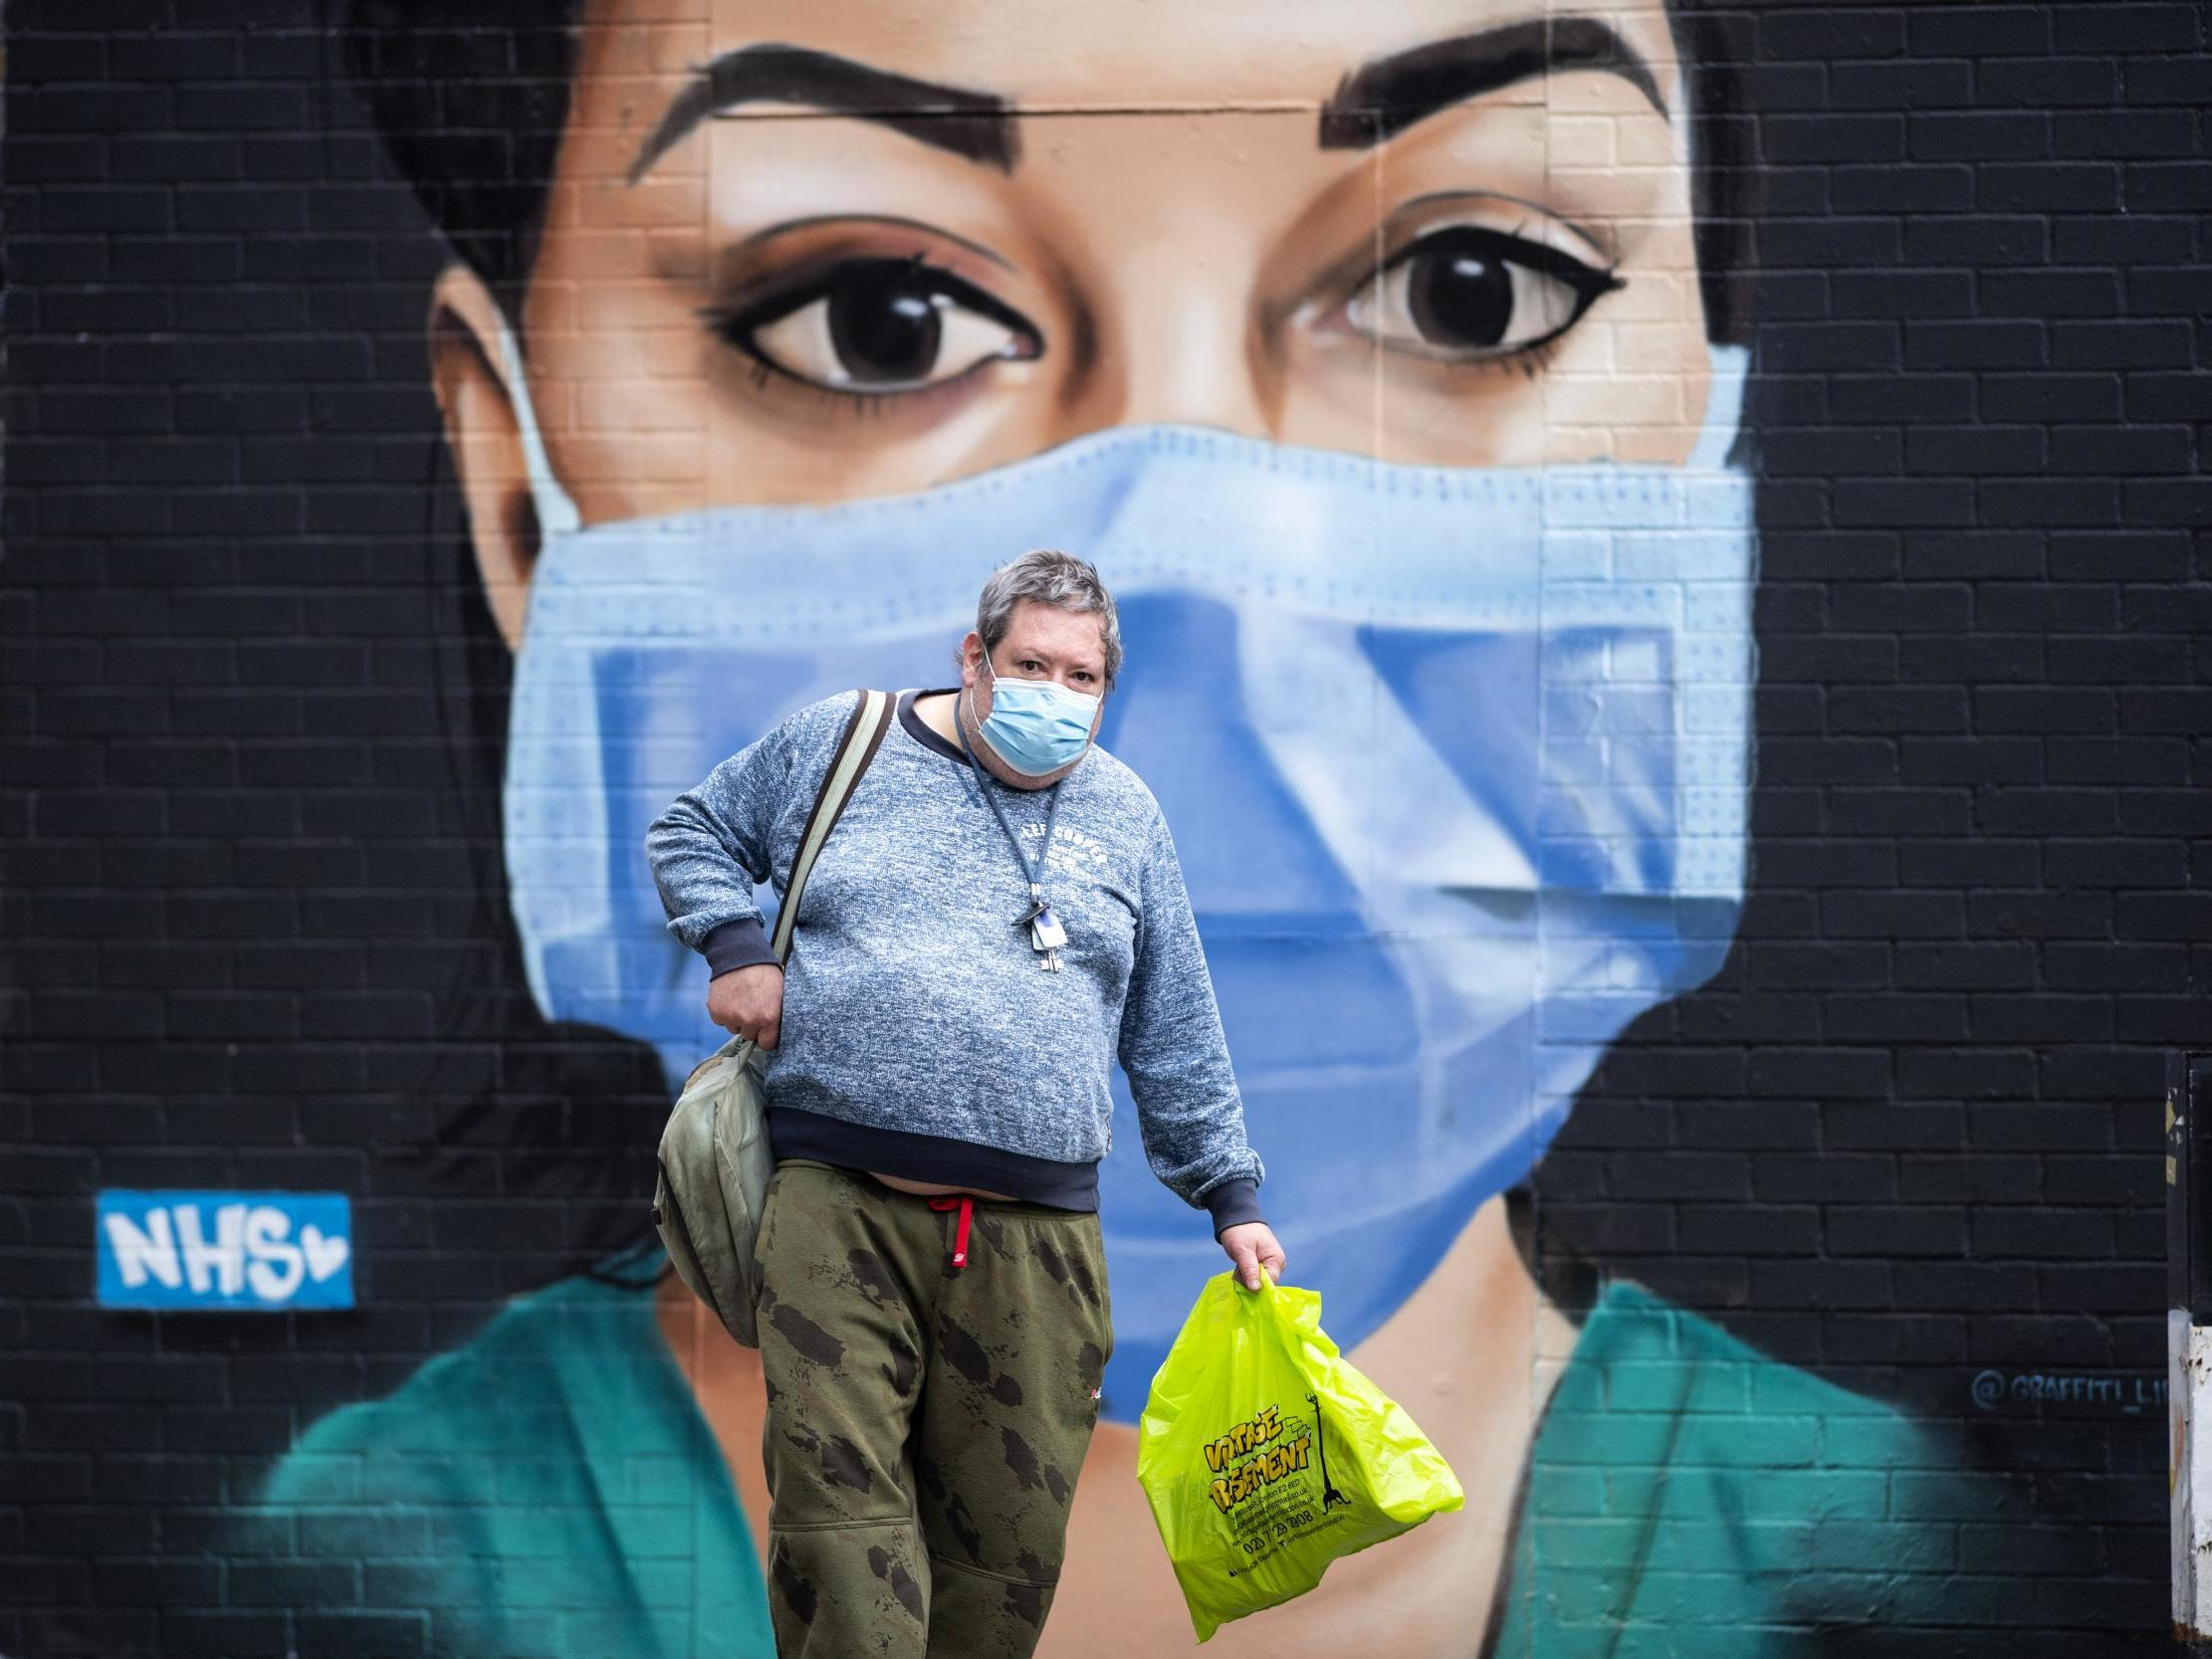 Coronavirus: Scientists divided over report recommending widespread use of face masks thumbnail